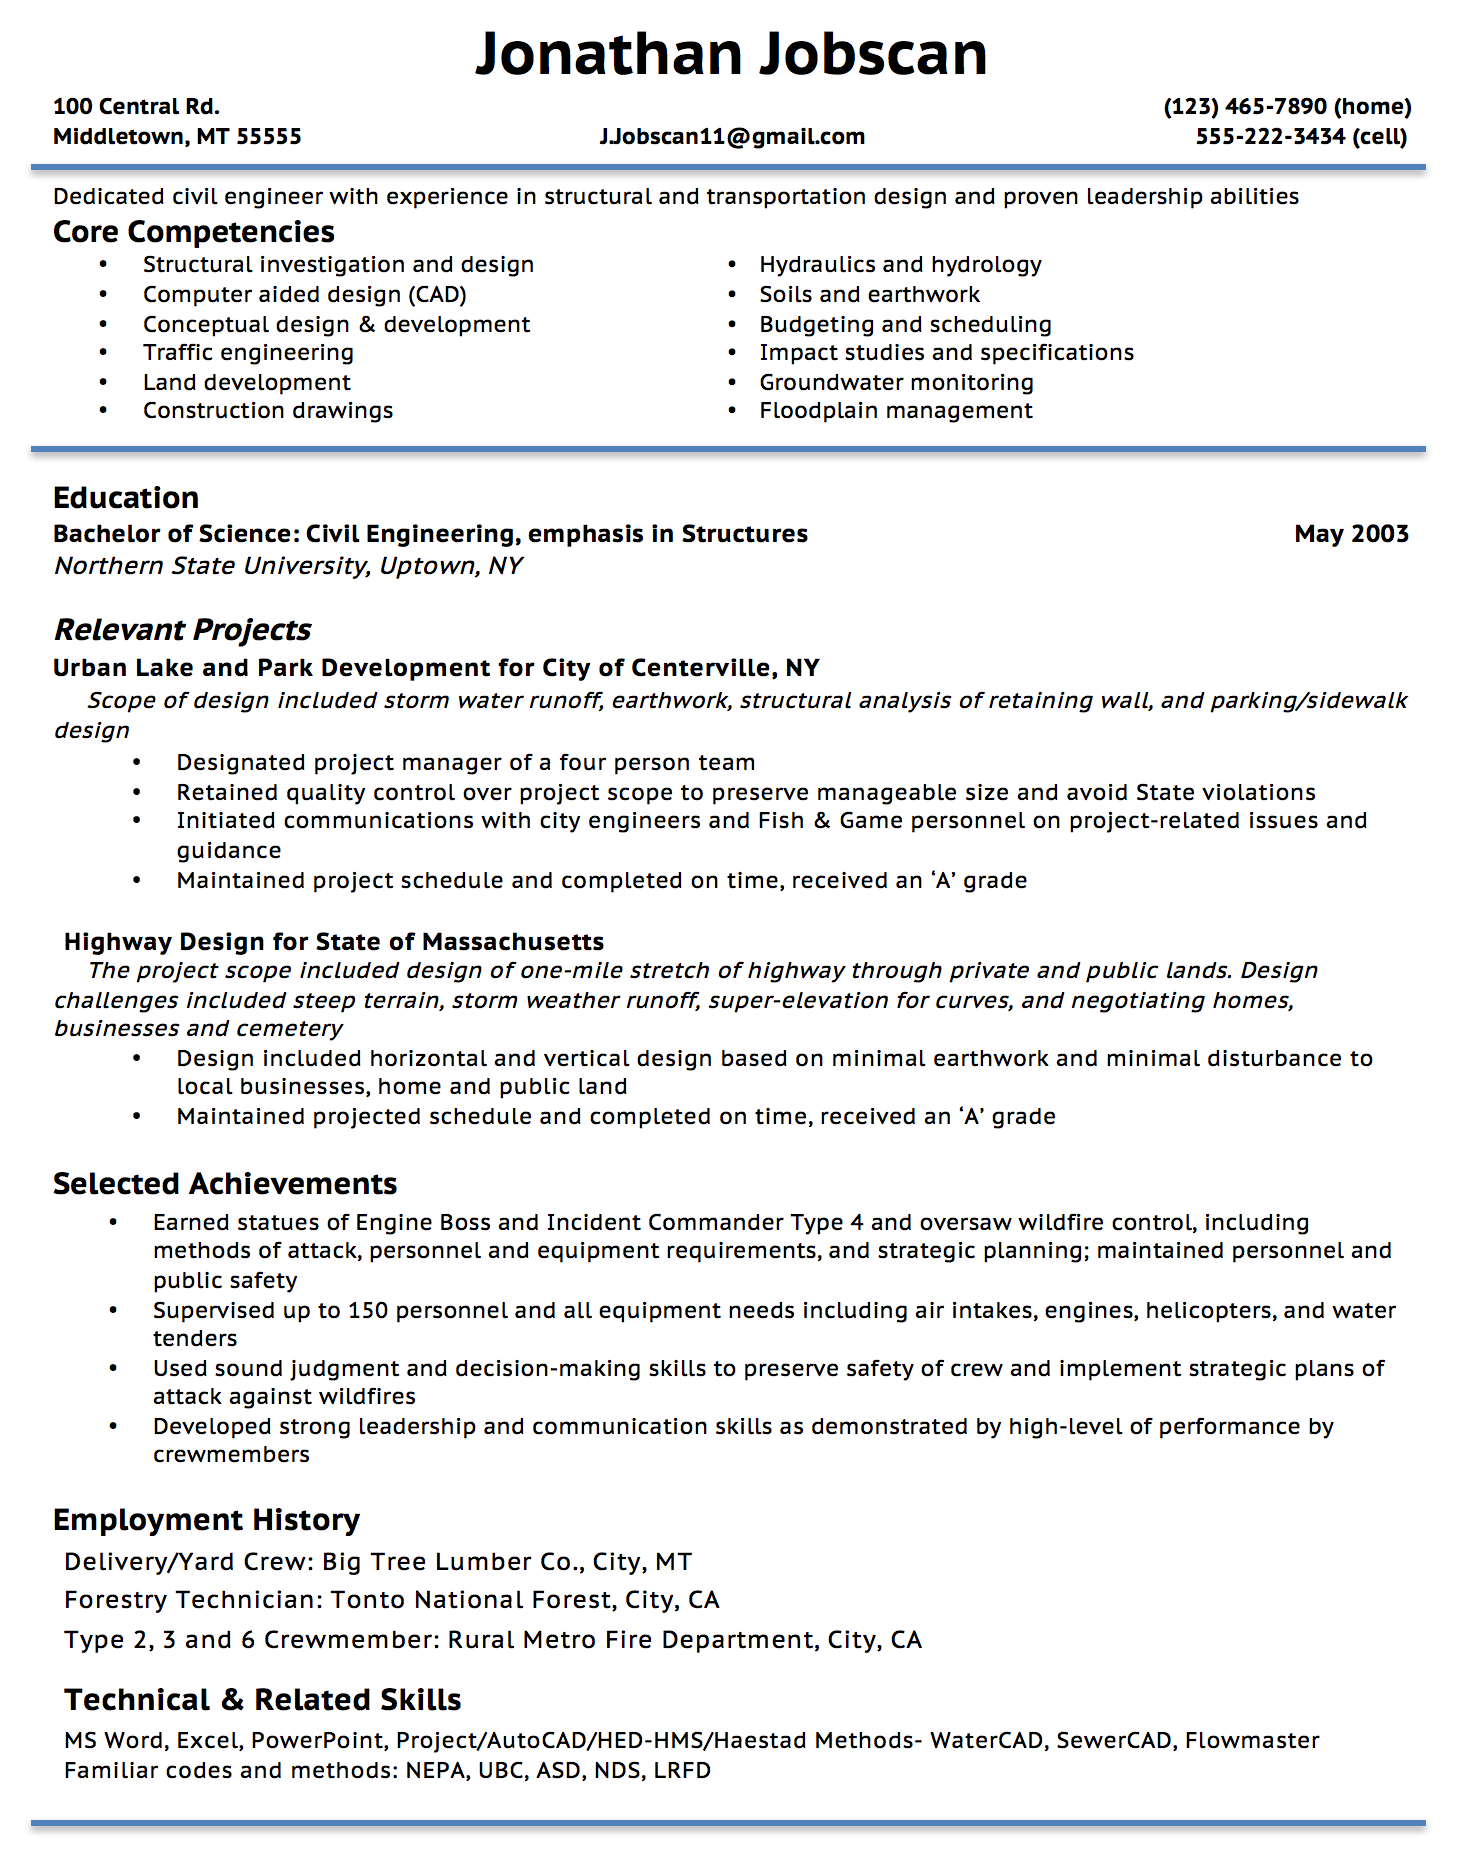 Functional Resume Example. Example Of A Functional Resume Format  How To Format Your Resume